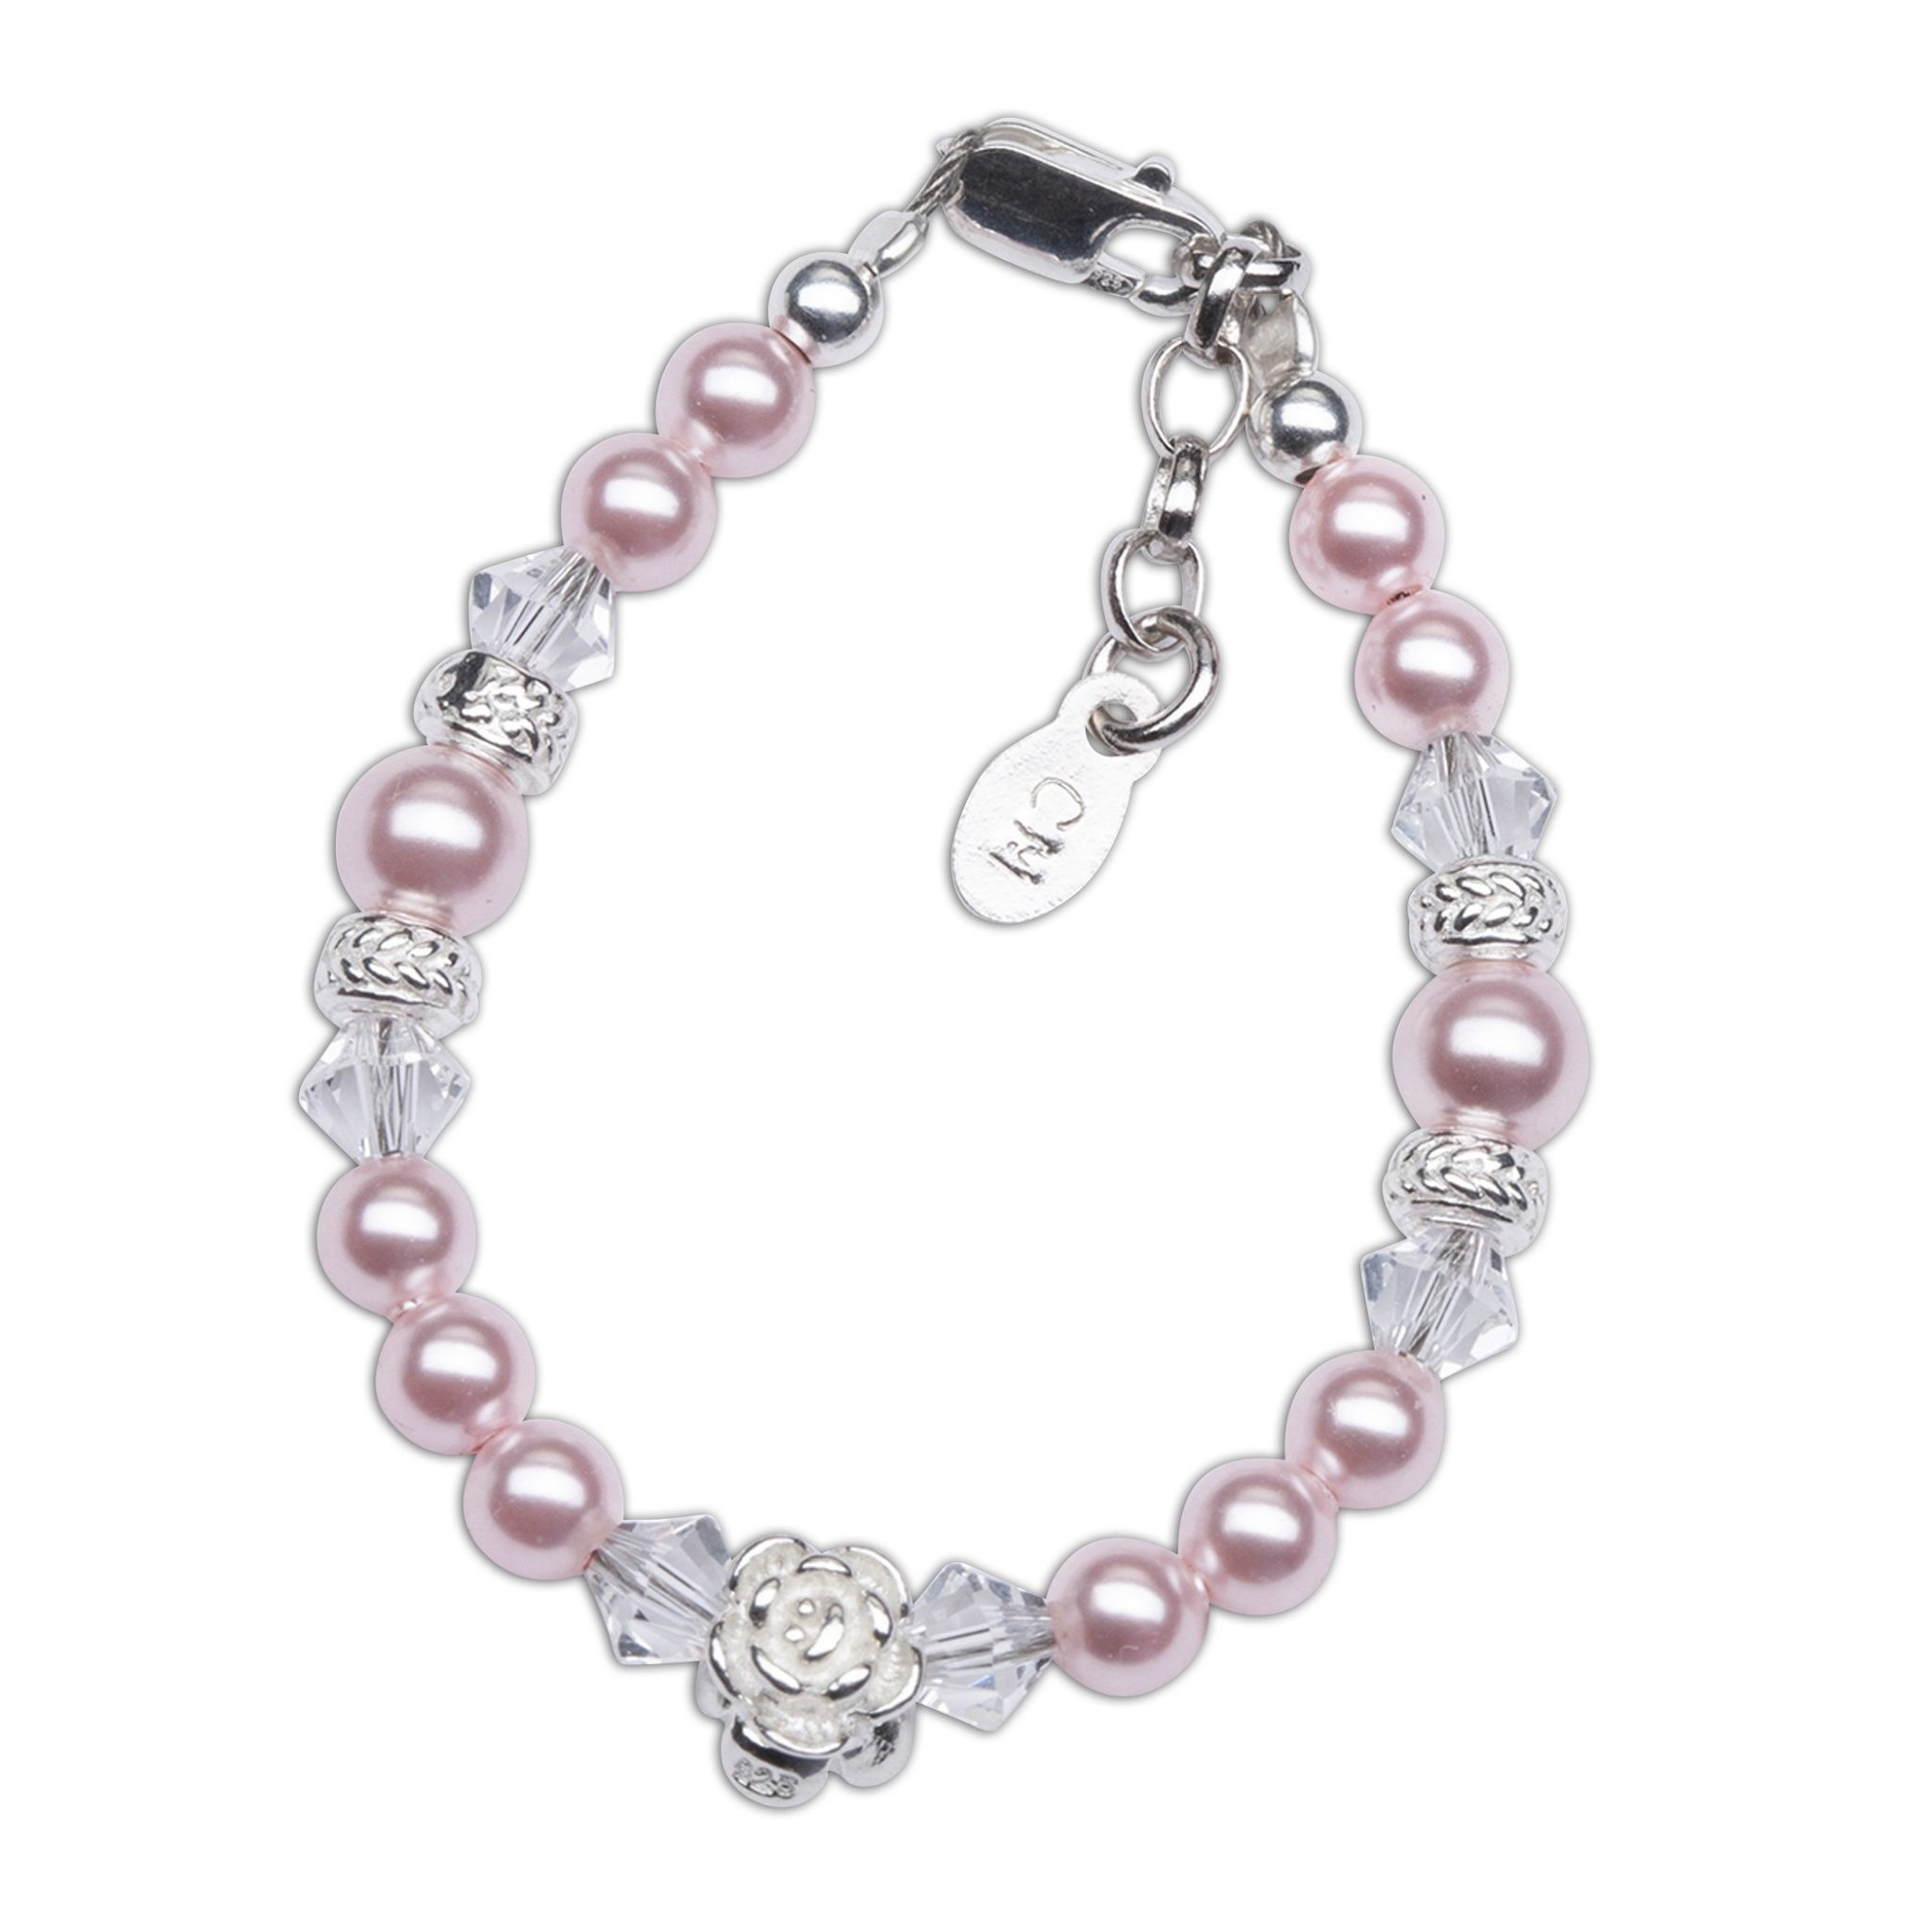 Rose Bracelet - Sterling Silver with Pink Pearl & Rose Charm